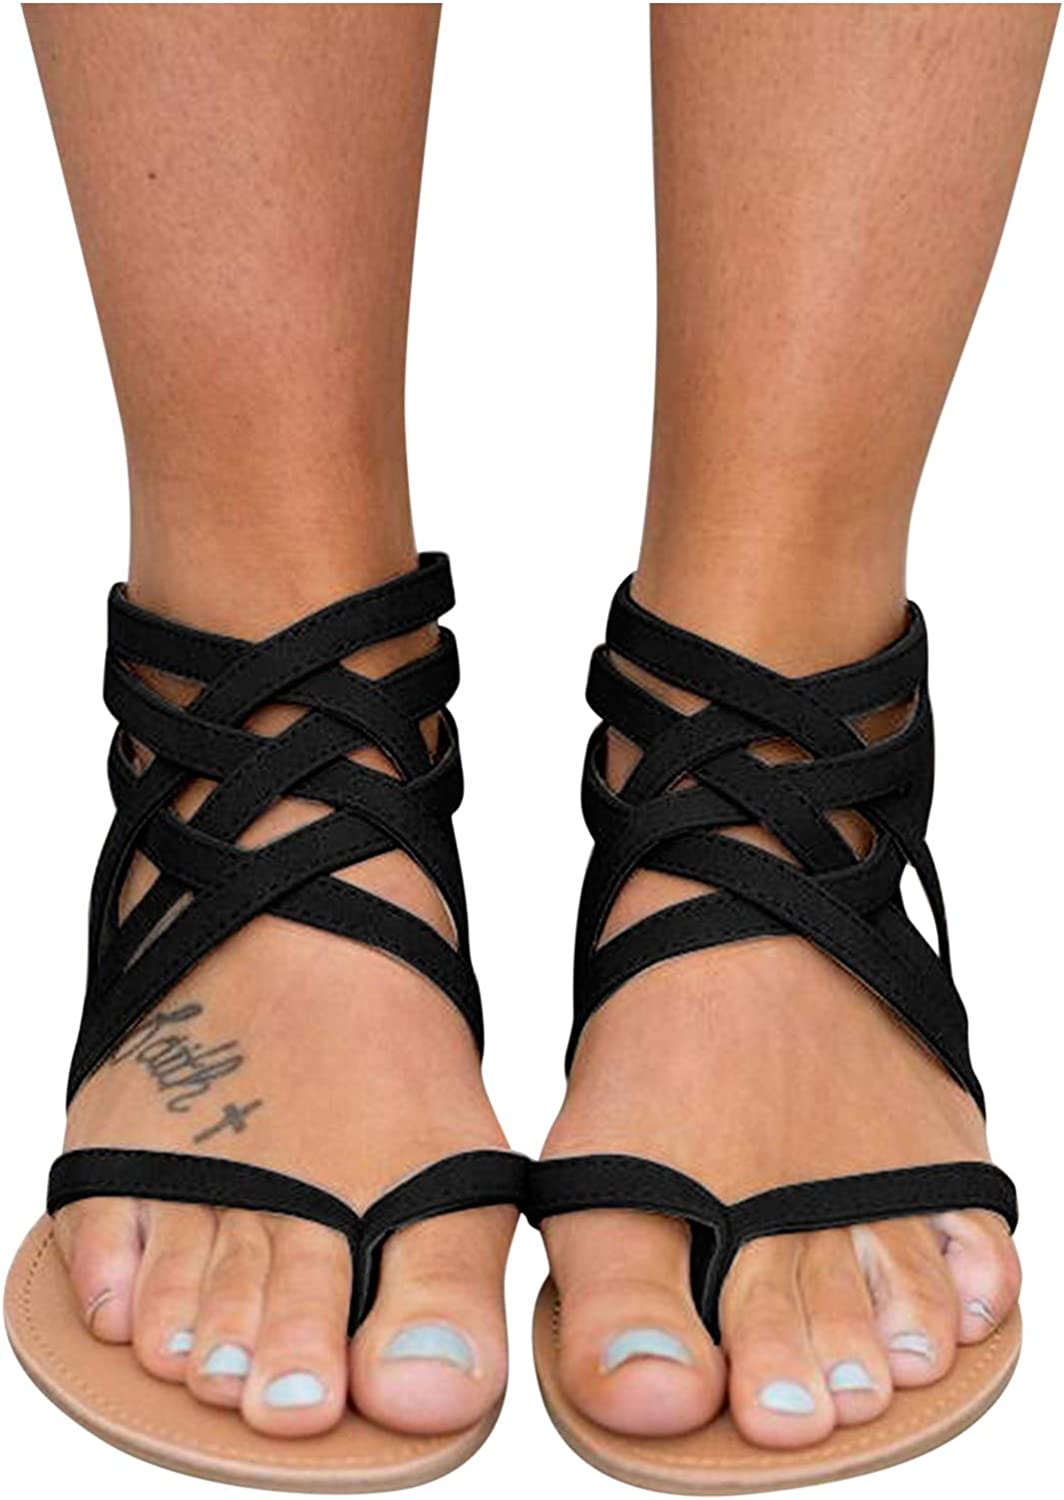 Xudanell Womens Sandals Open Toe Gladiator Slip On Slides Sunflower Strappy Casual Summer Dressy Ladies Sandals for Women